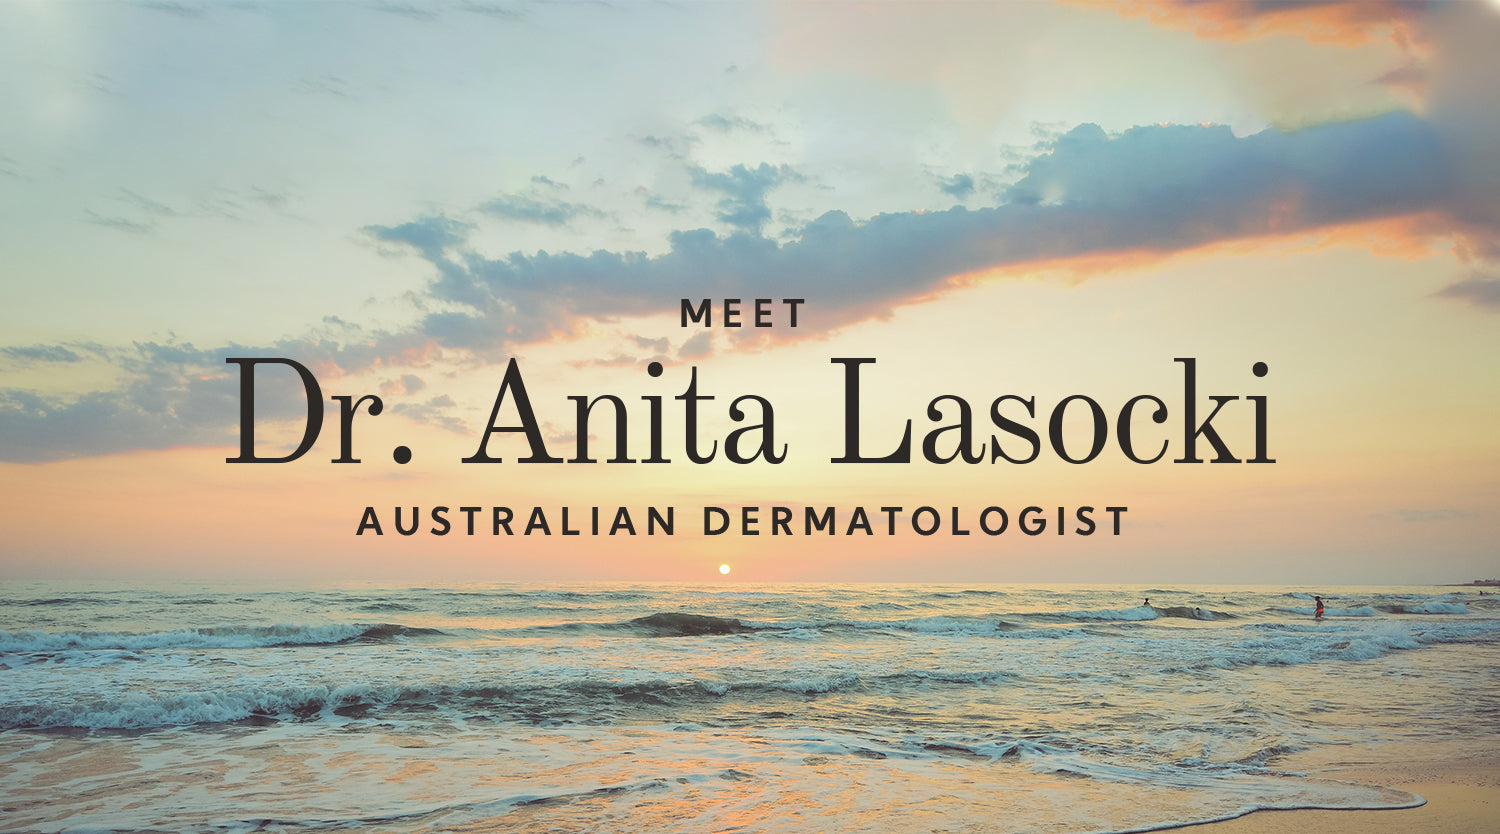 We've got you covered series with Dr. Anita Lasocki